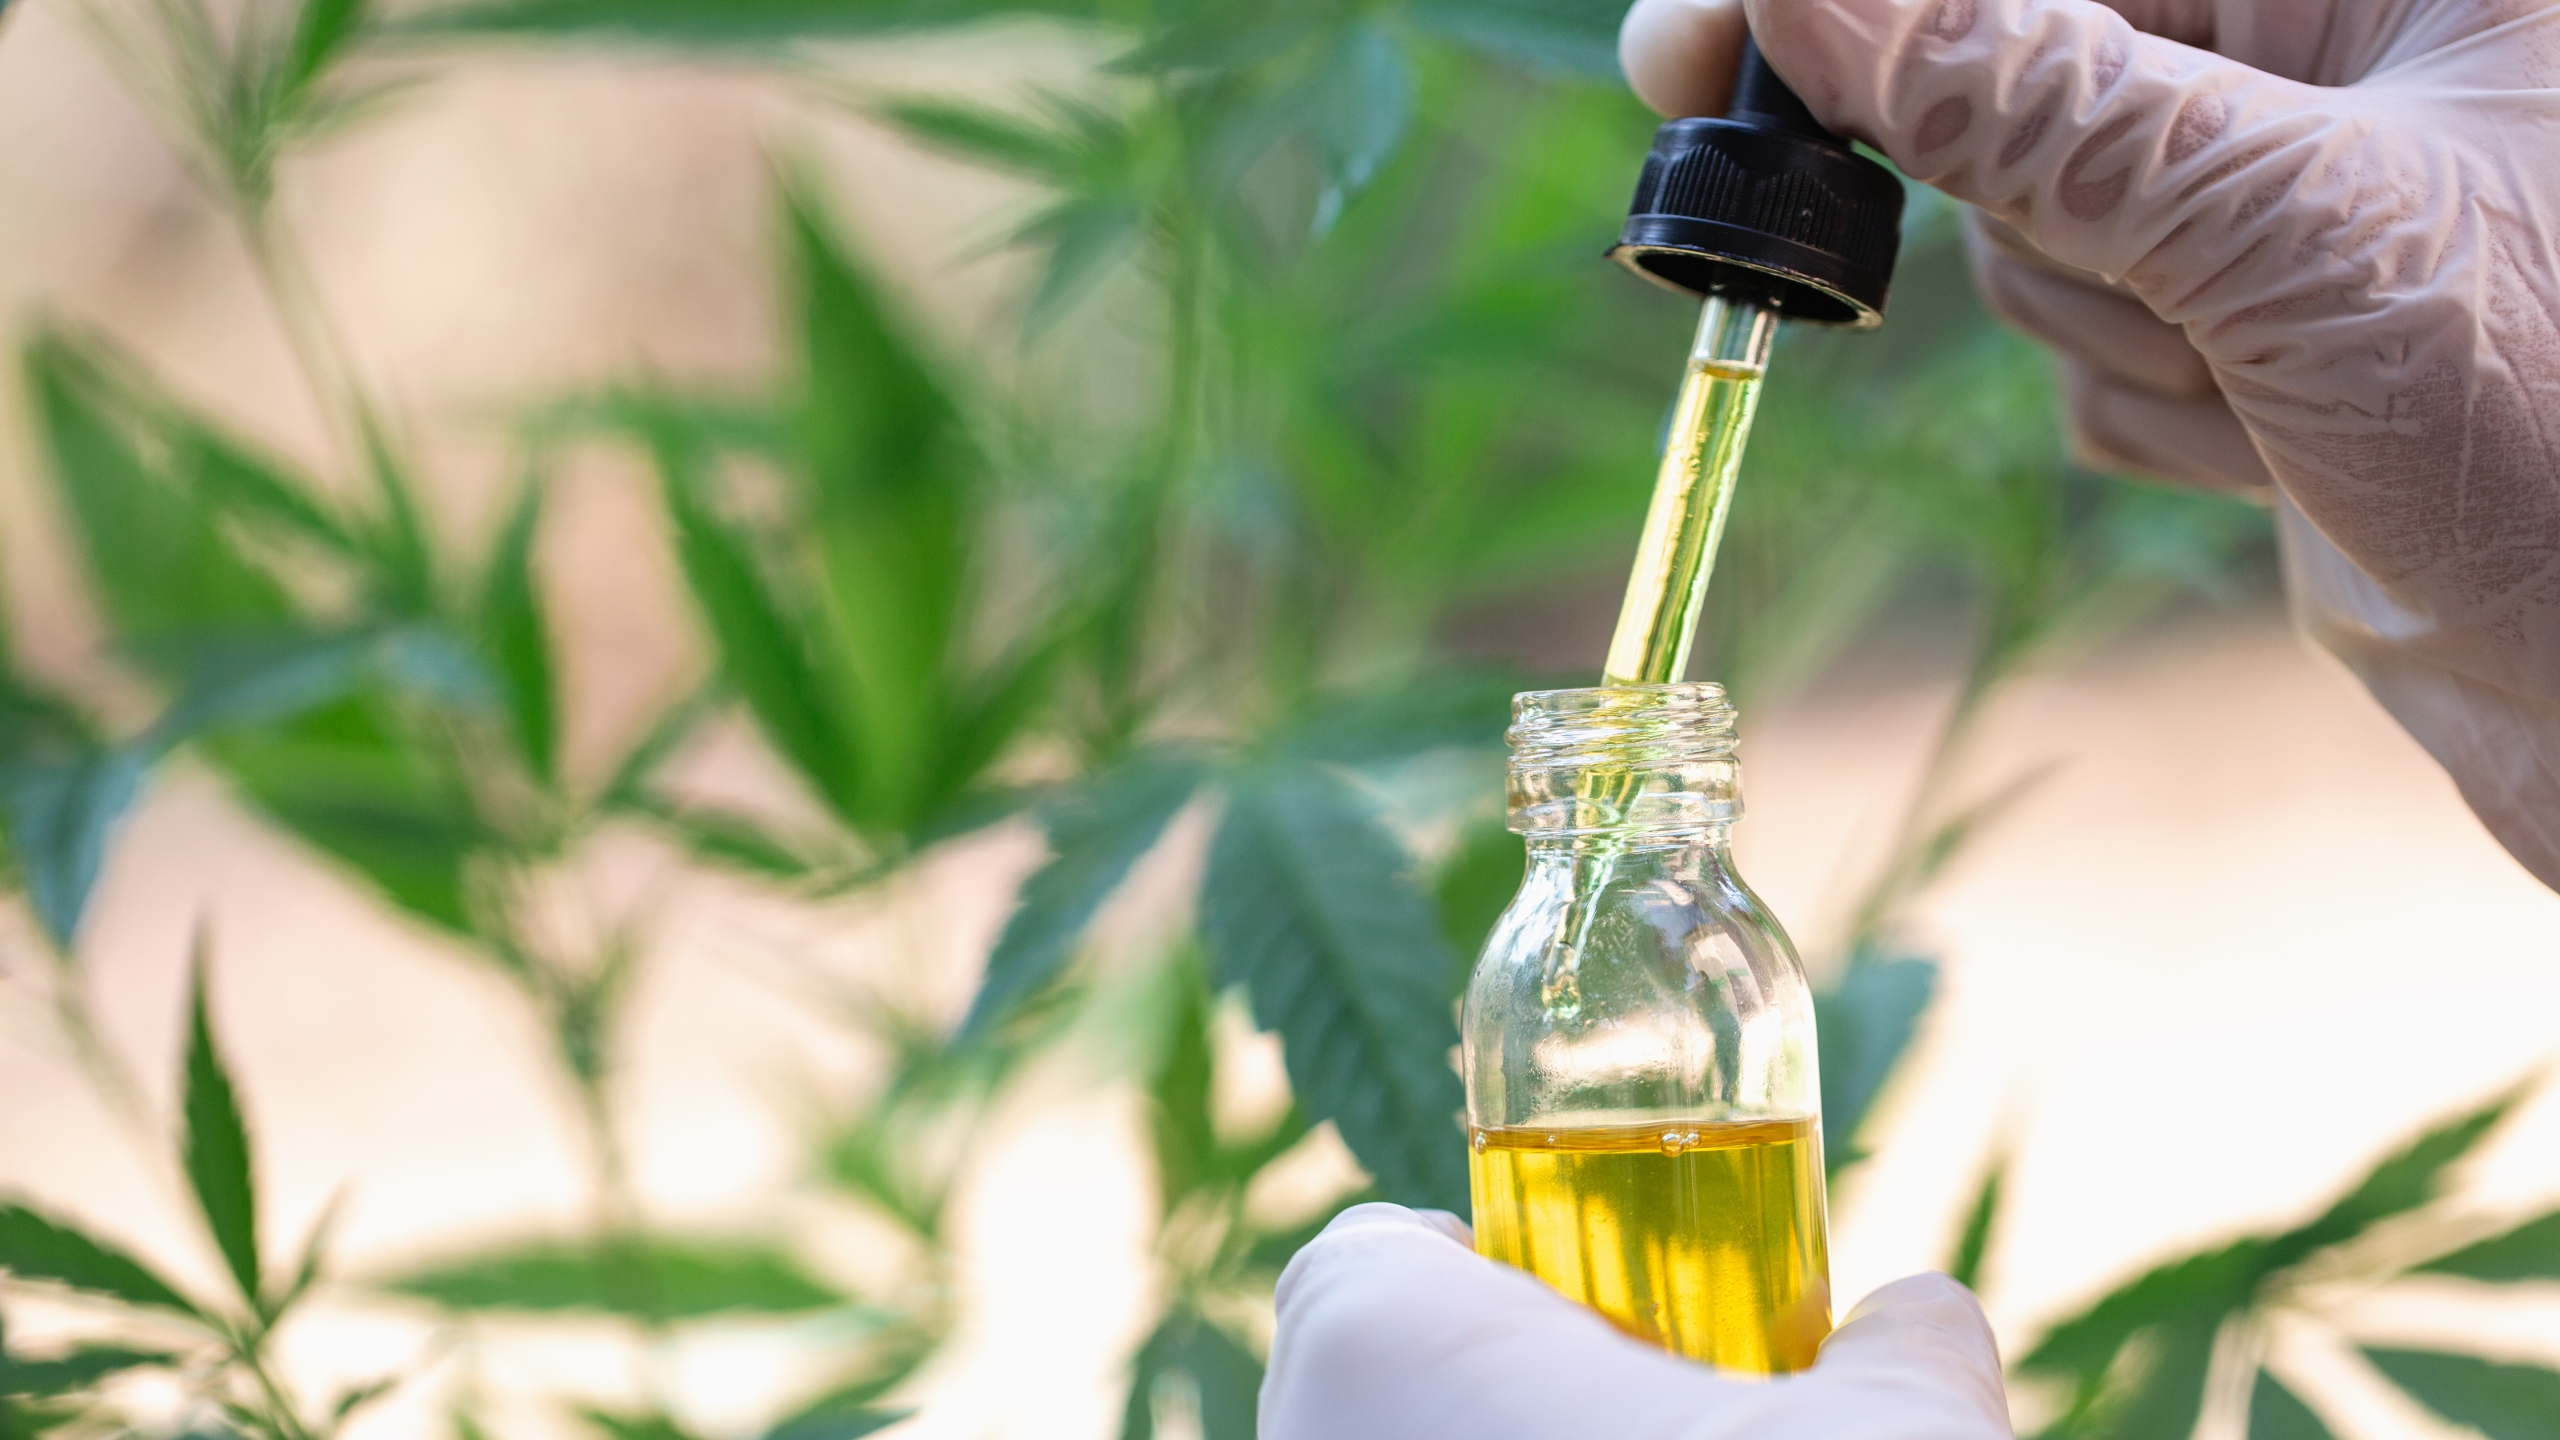 This file photo shows cannabis oil. (Credit: Getty Images)